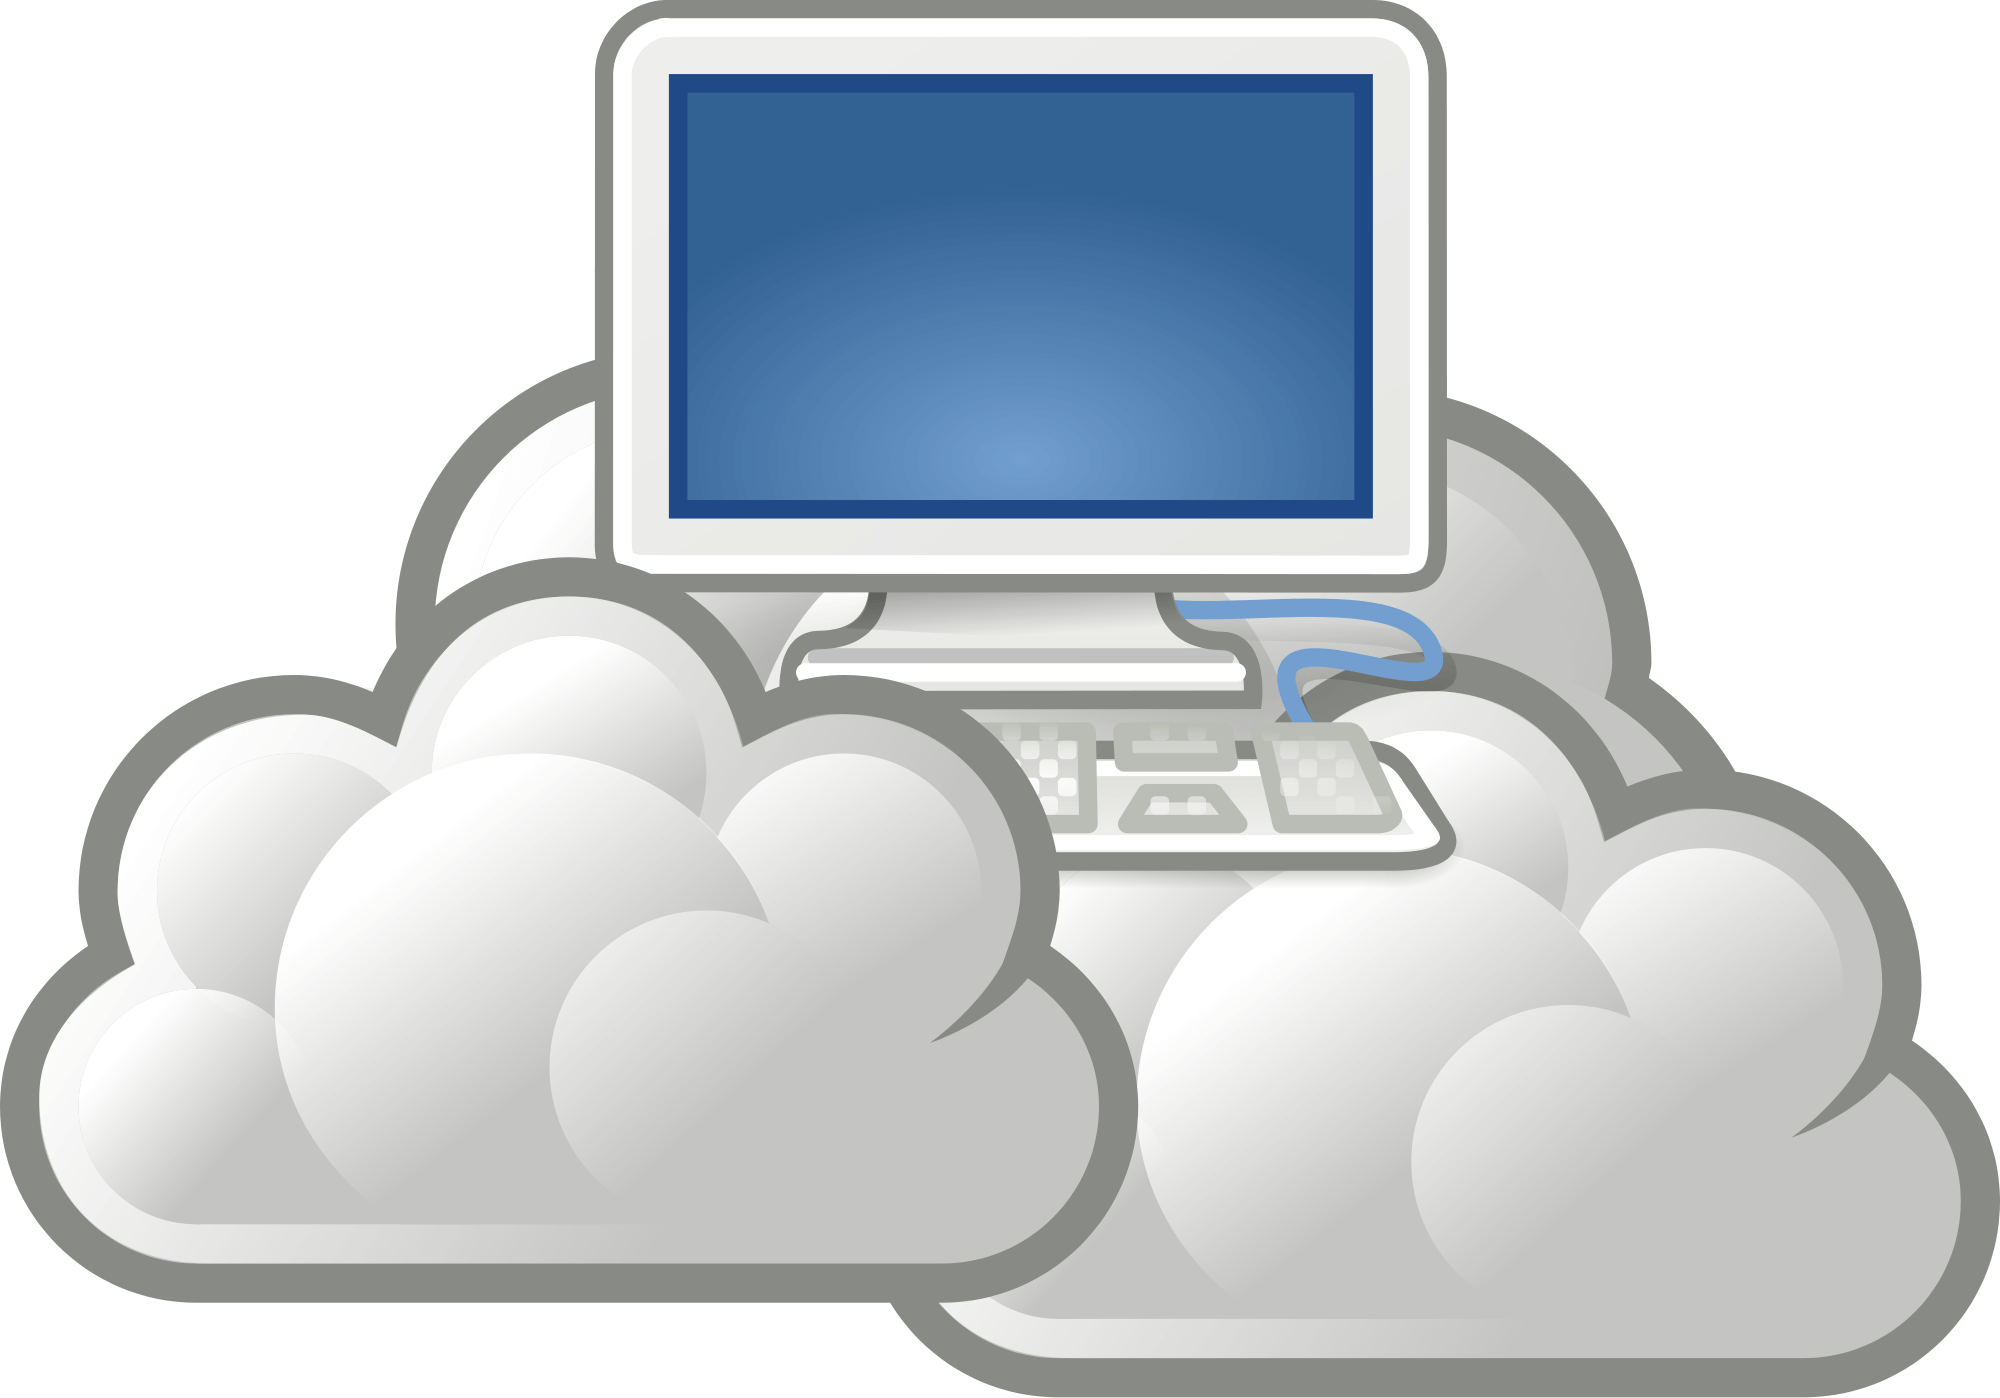 graphic free Web service clipart. Cloud hosting website services